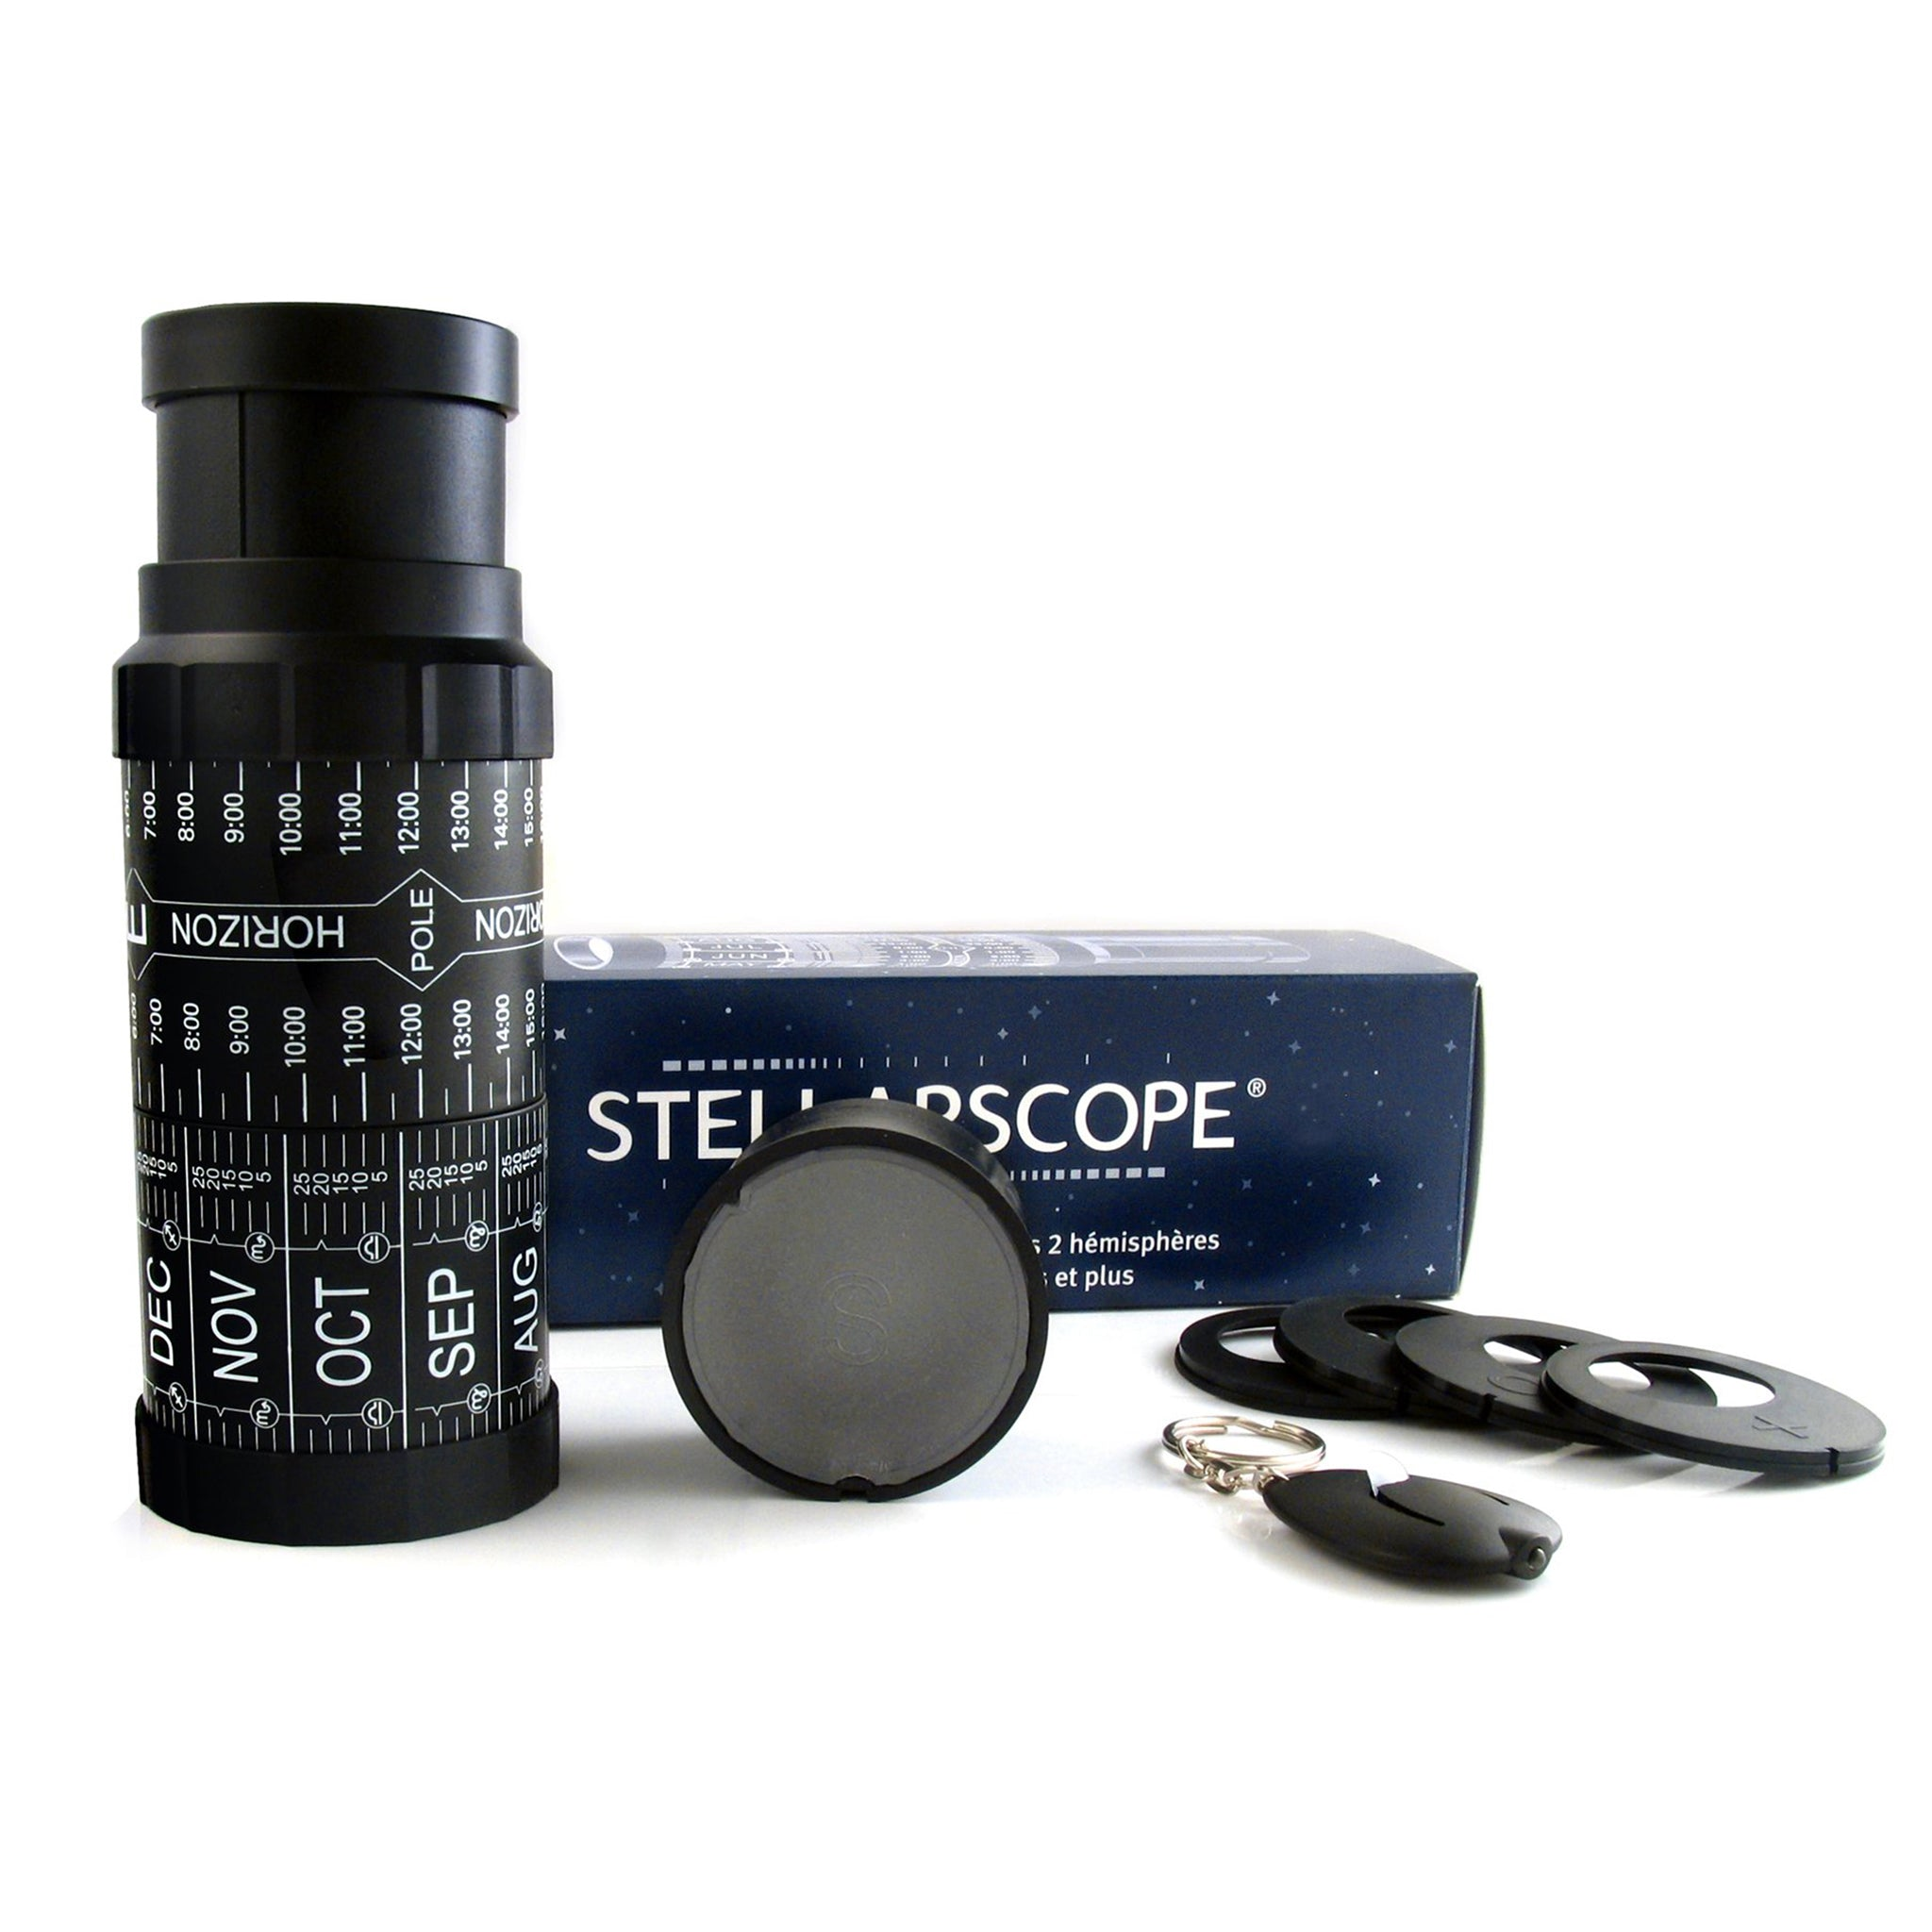 Stellarscope Handheld Star Finder